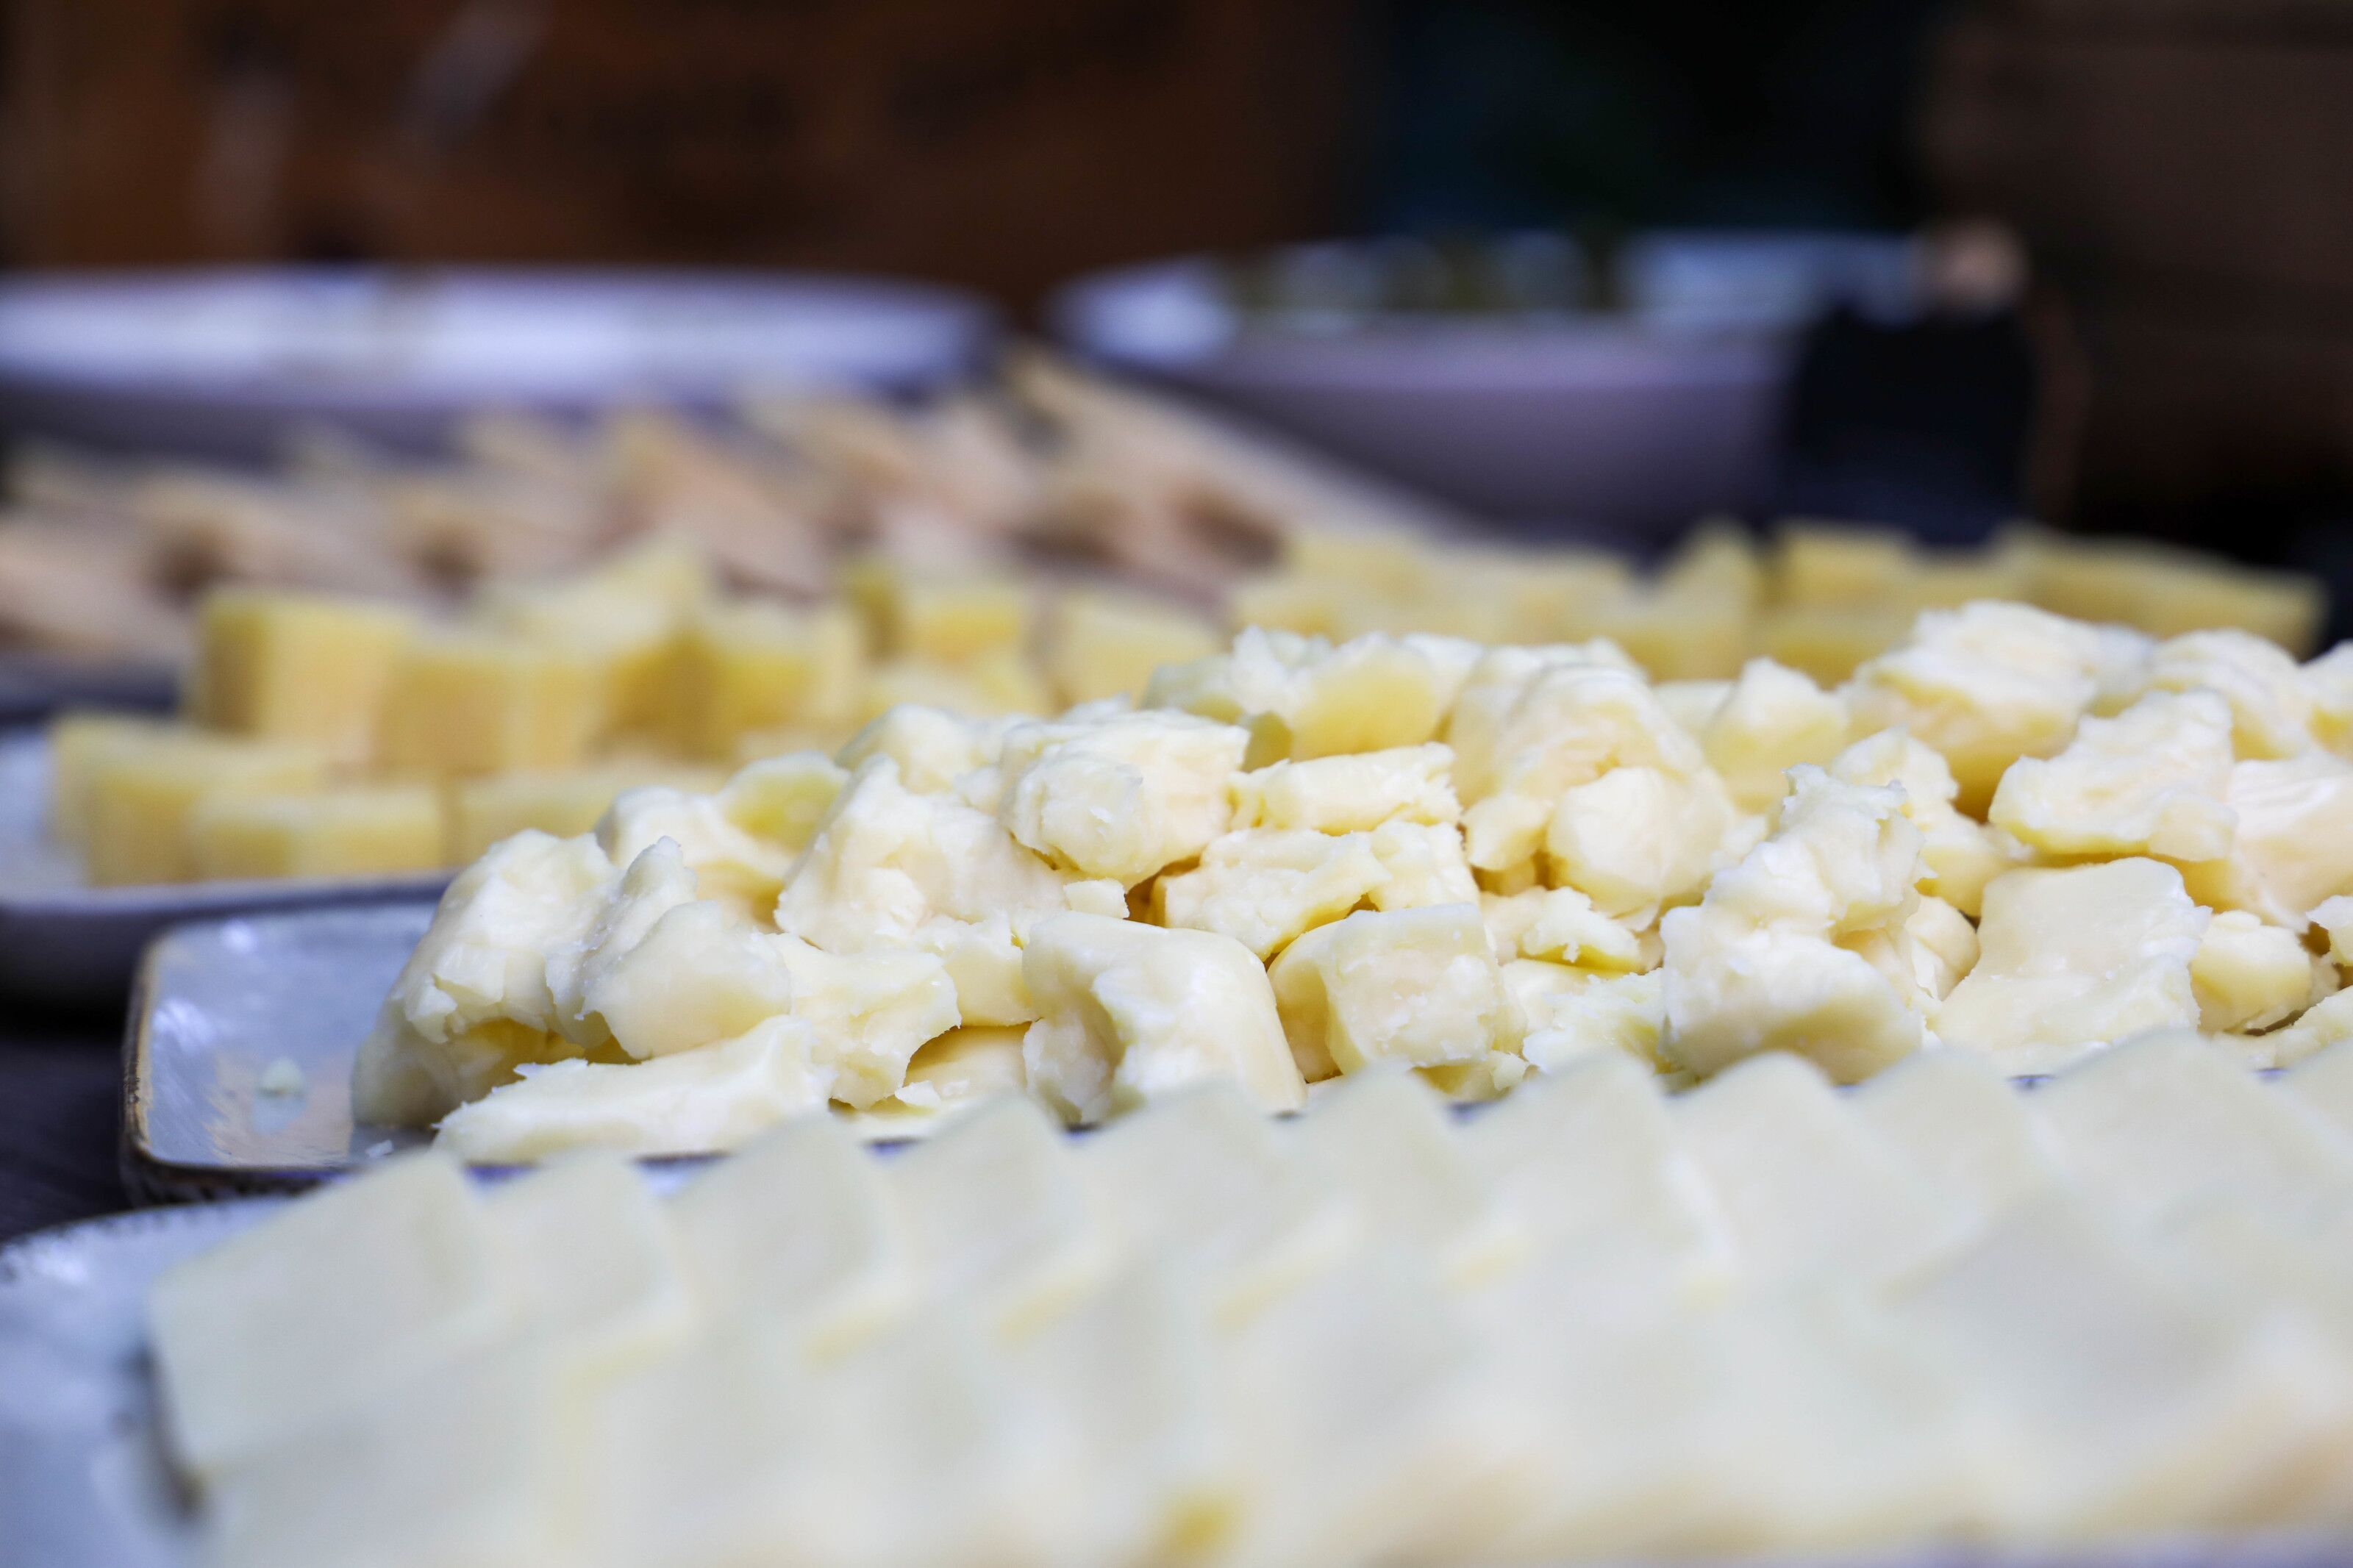 California Cheese Trail: A tasty journey through artisan cheese